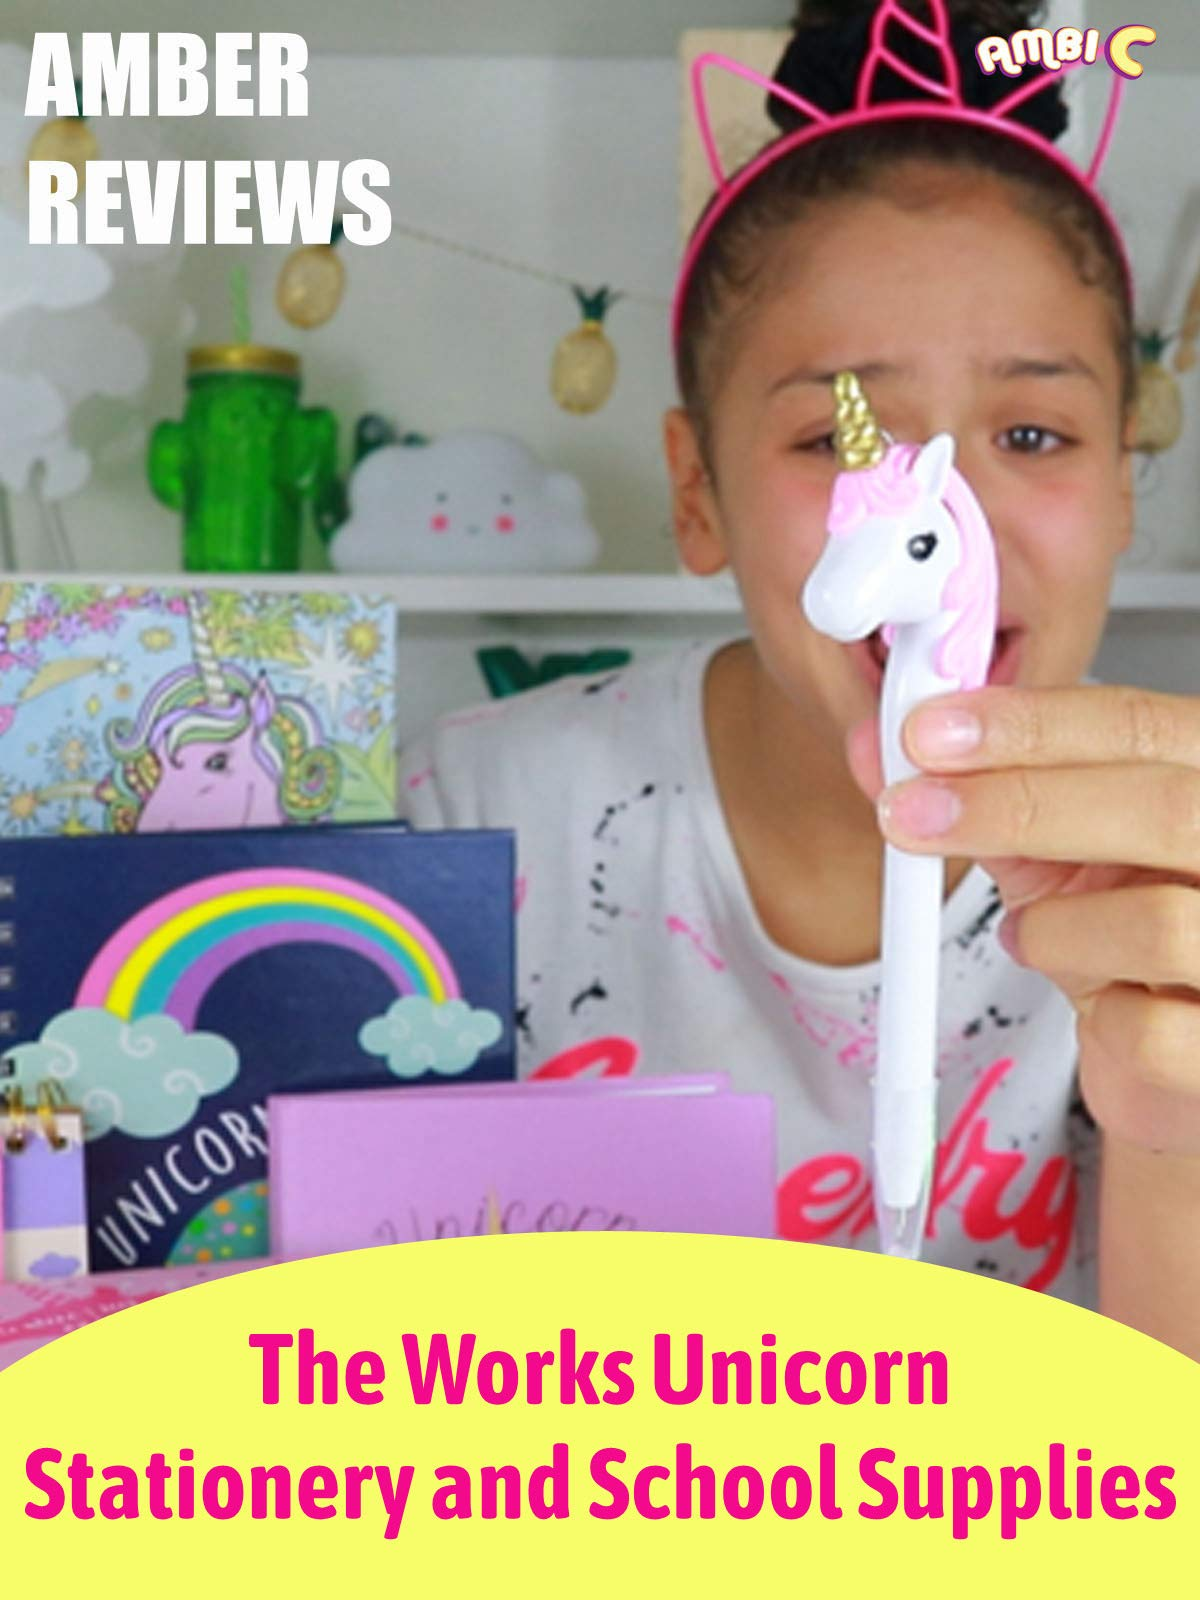 Amber Reviews The Works Unicorn Stationery and School Supplies